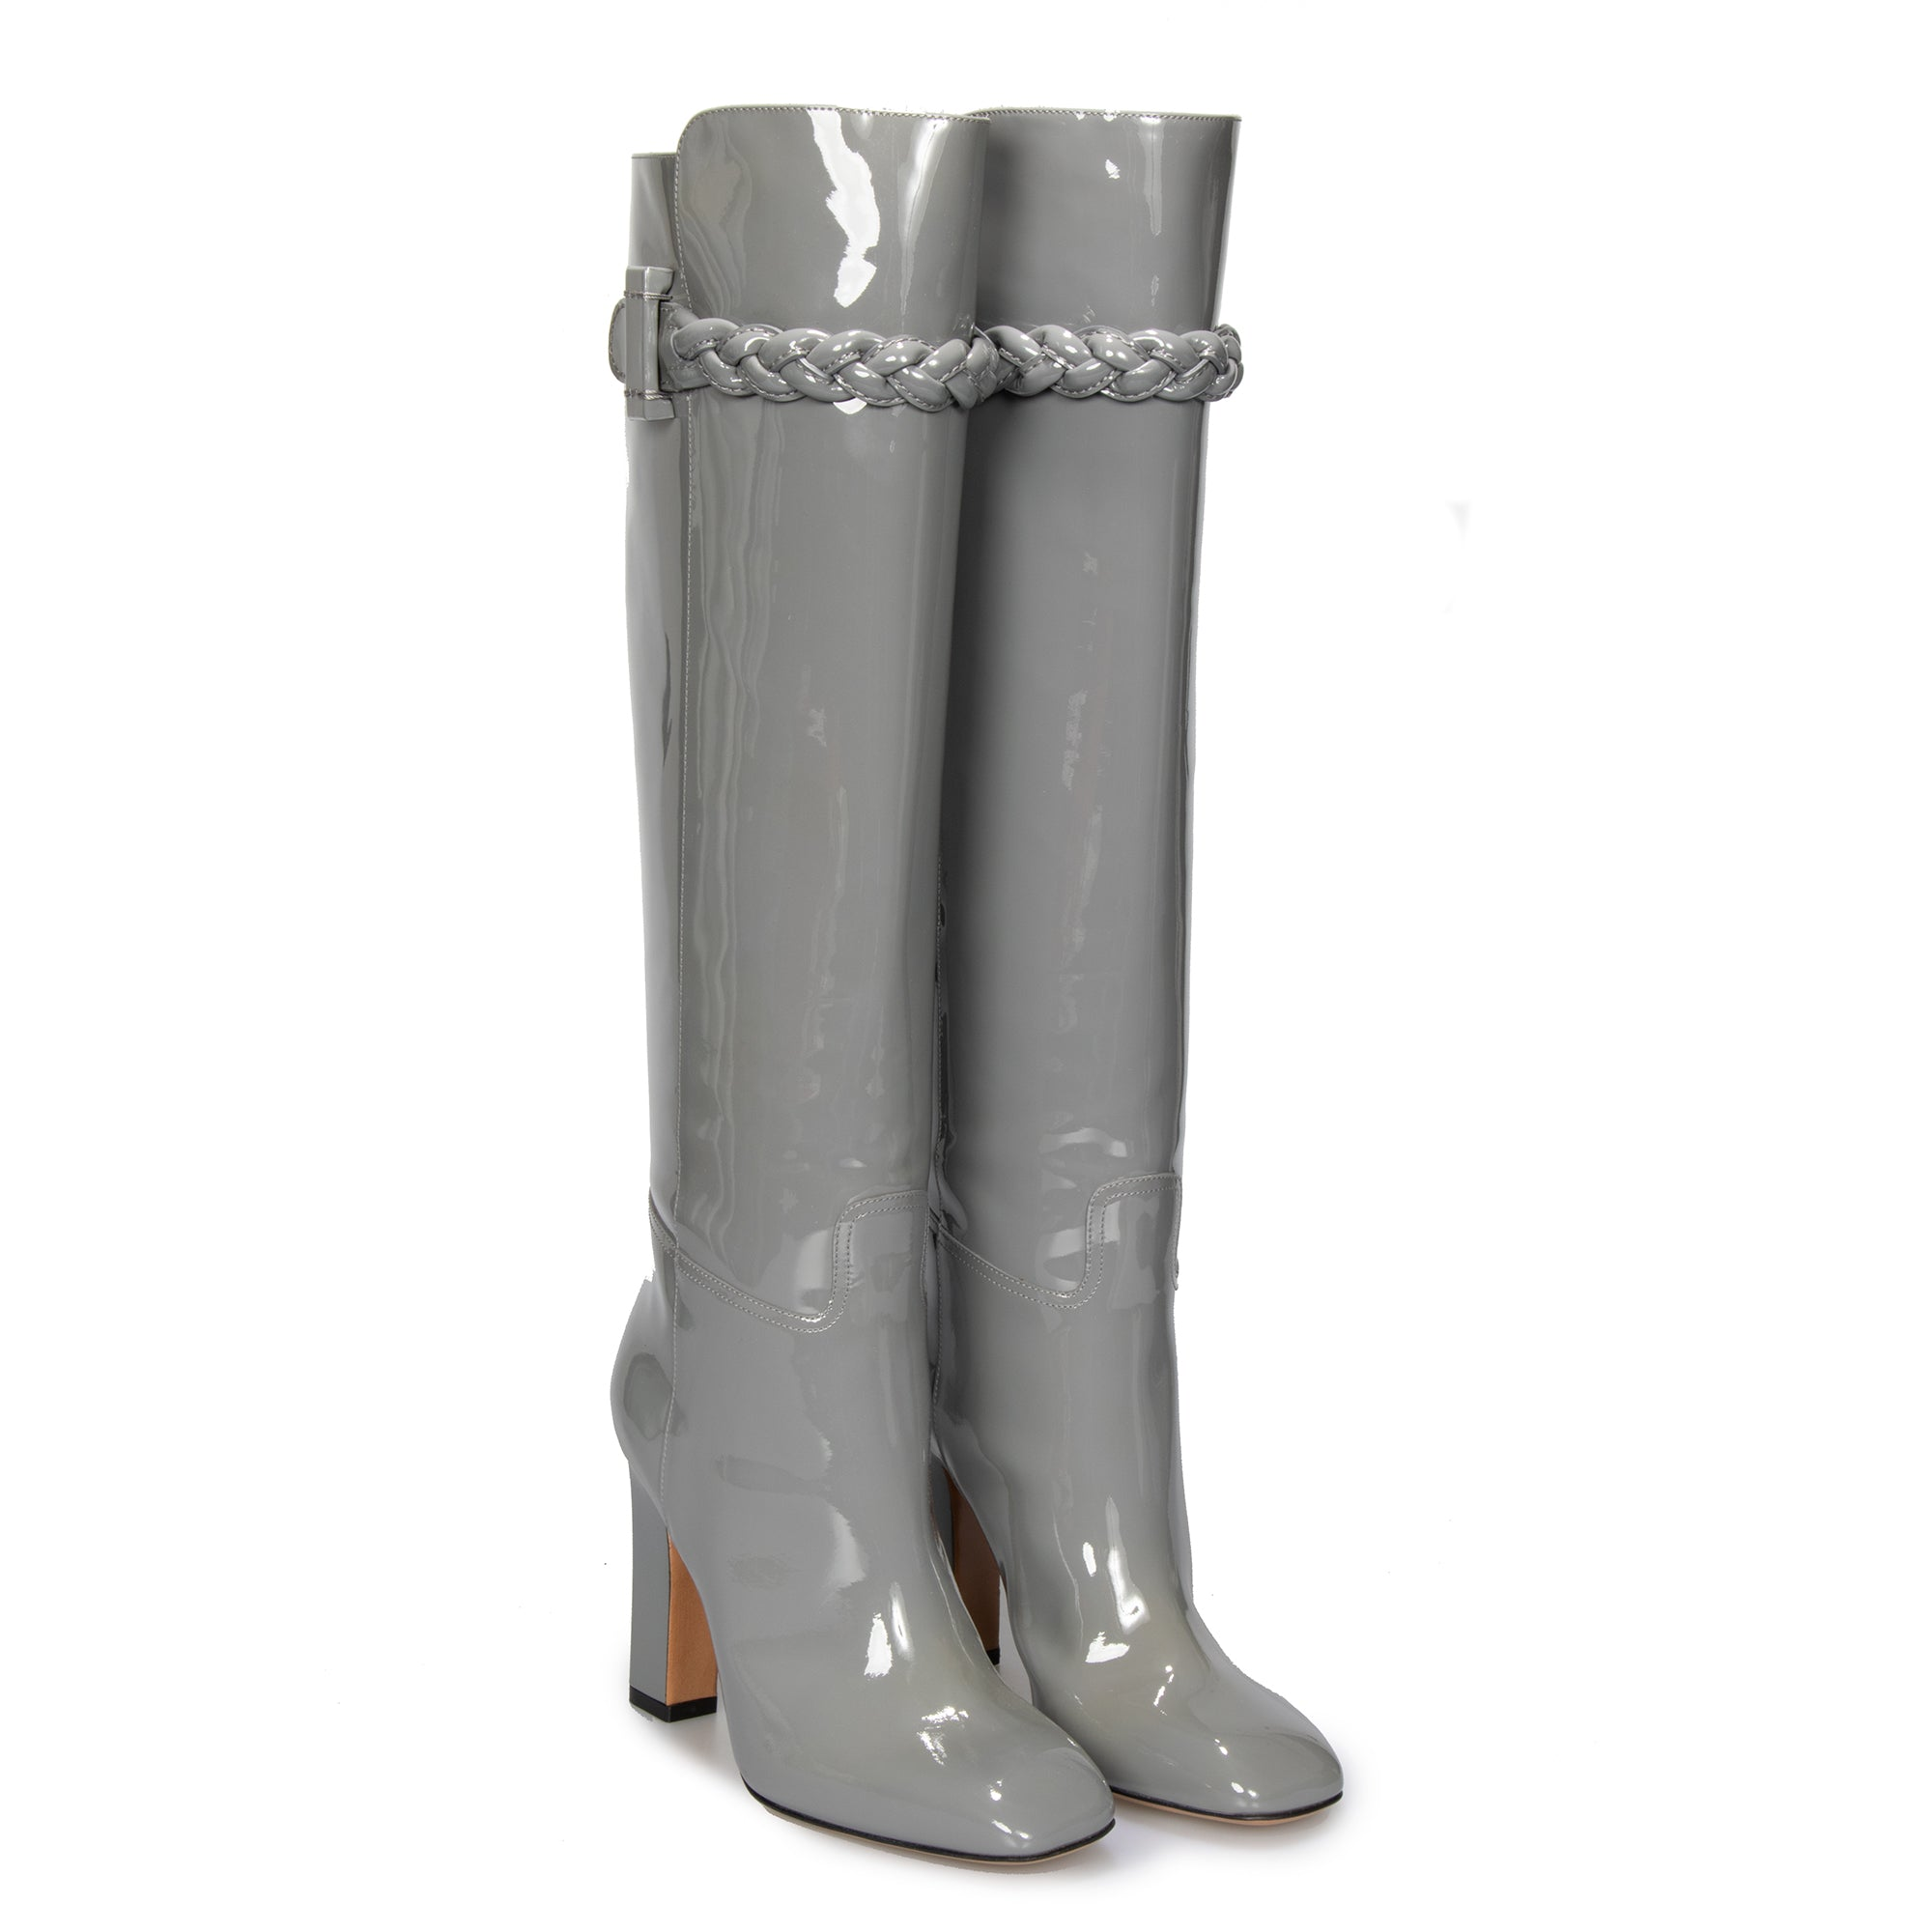 Valentino Knee High Patent Leather Boots in Gray